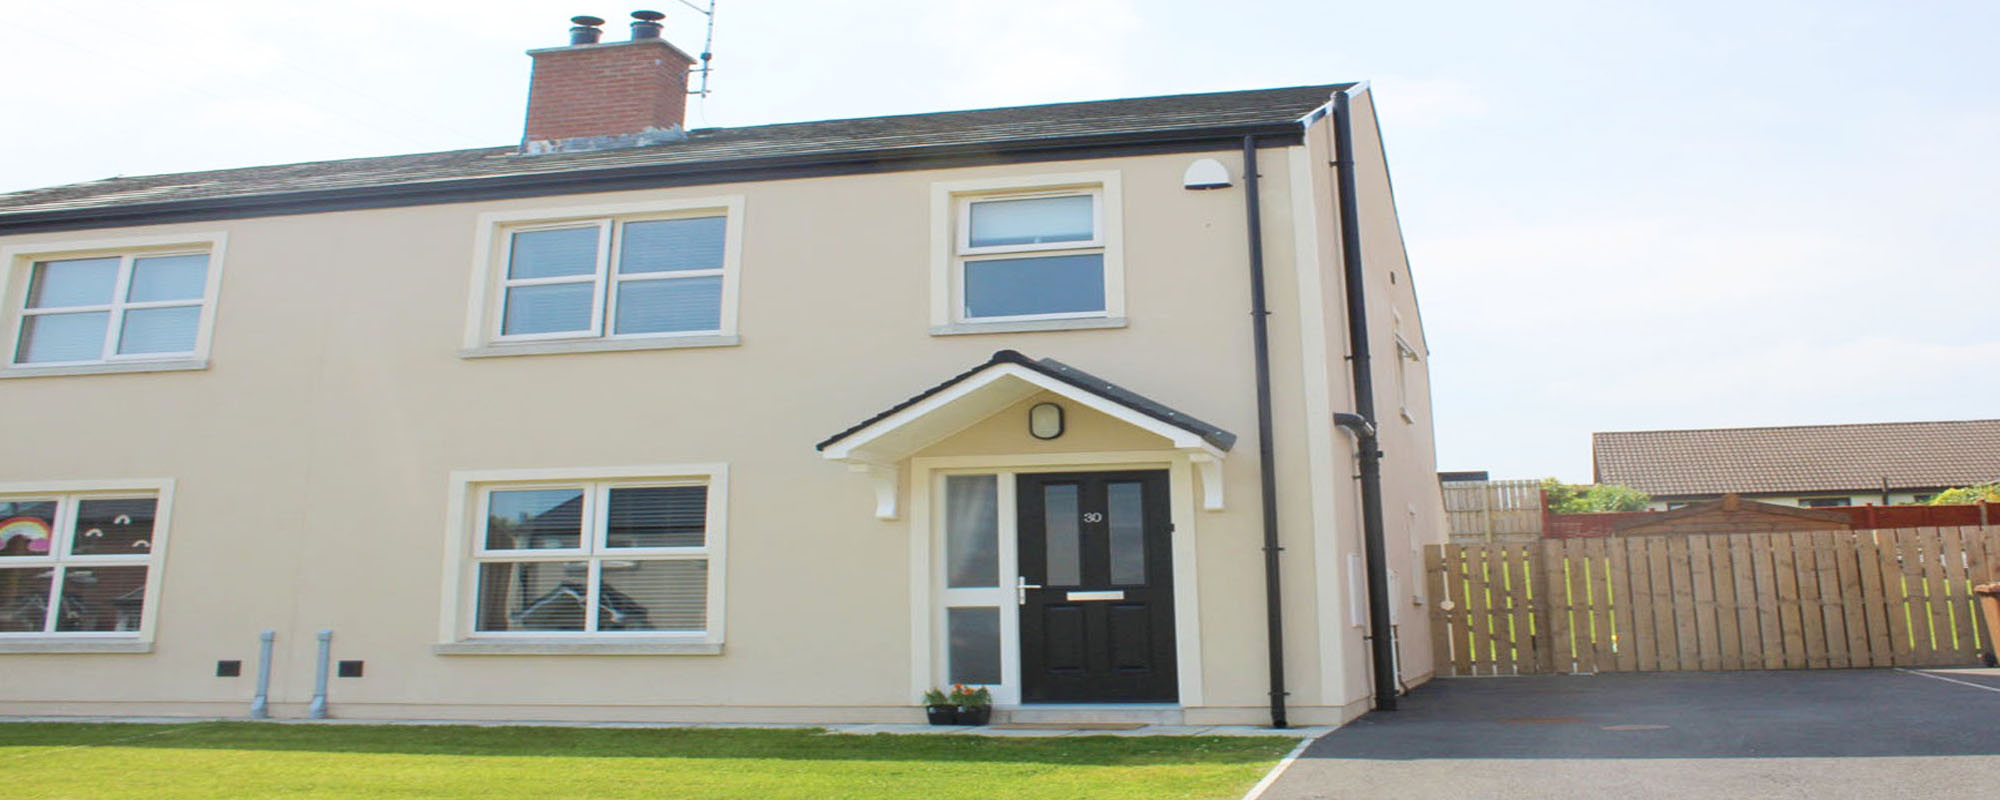 30 Glencar Meadows, Banbridge, BT32 4FD